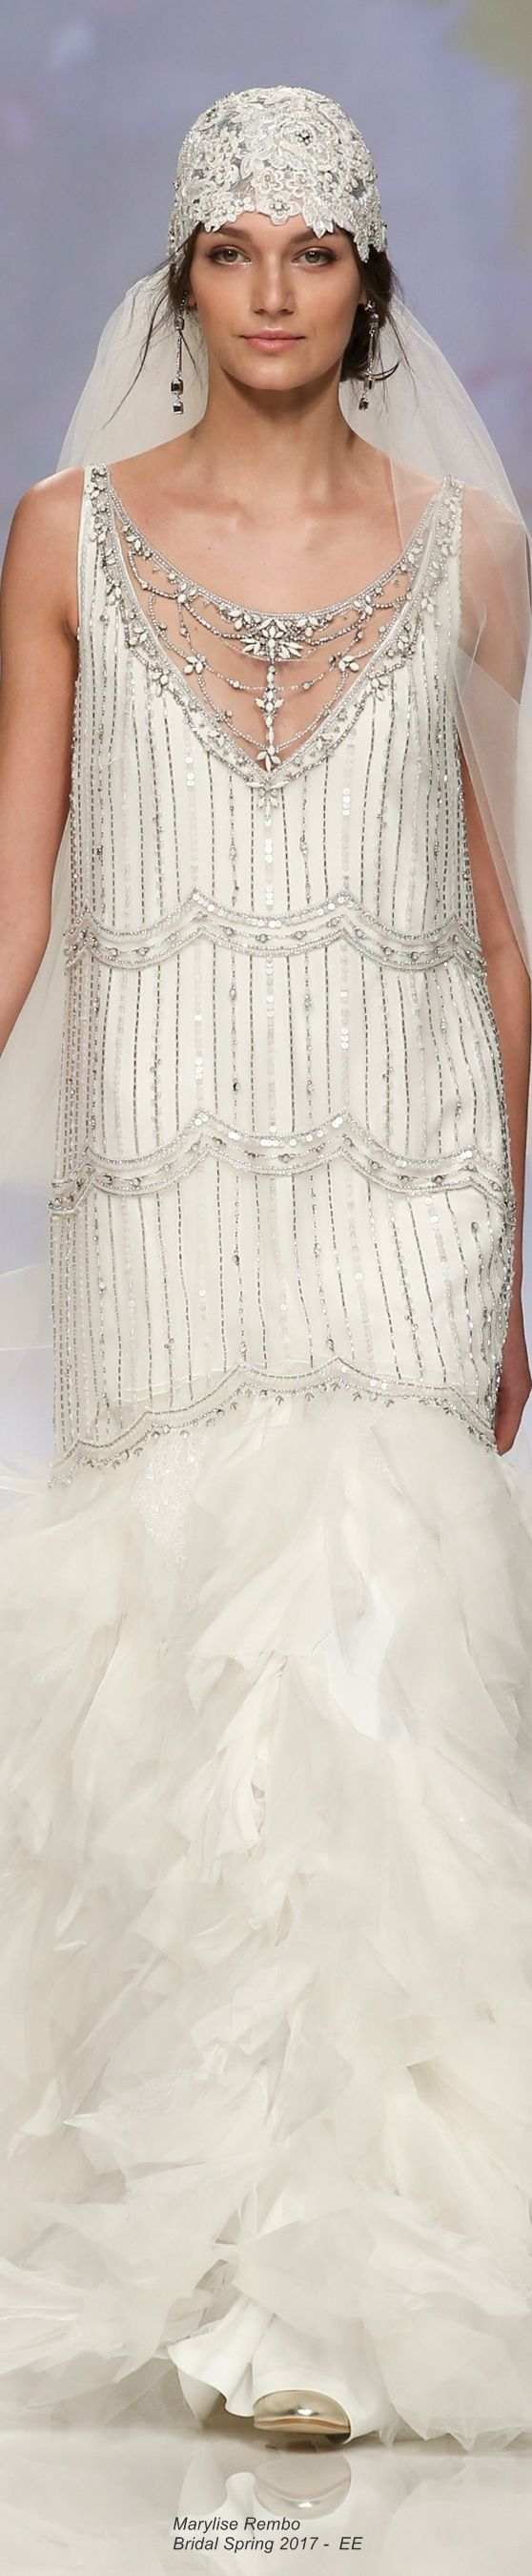 Rosamaria G Frangini | Wedding Wishes | TheBride | Marylise Rembo Spring 2017